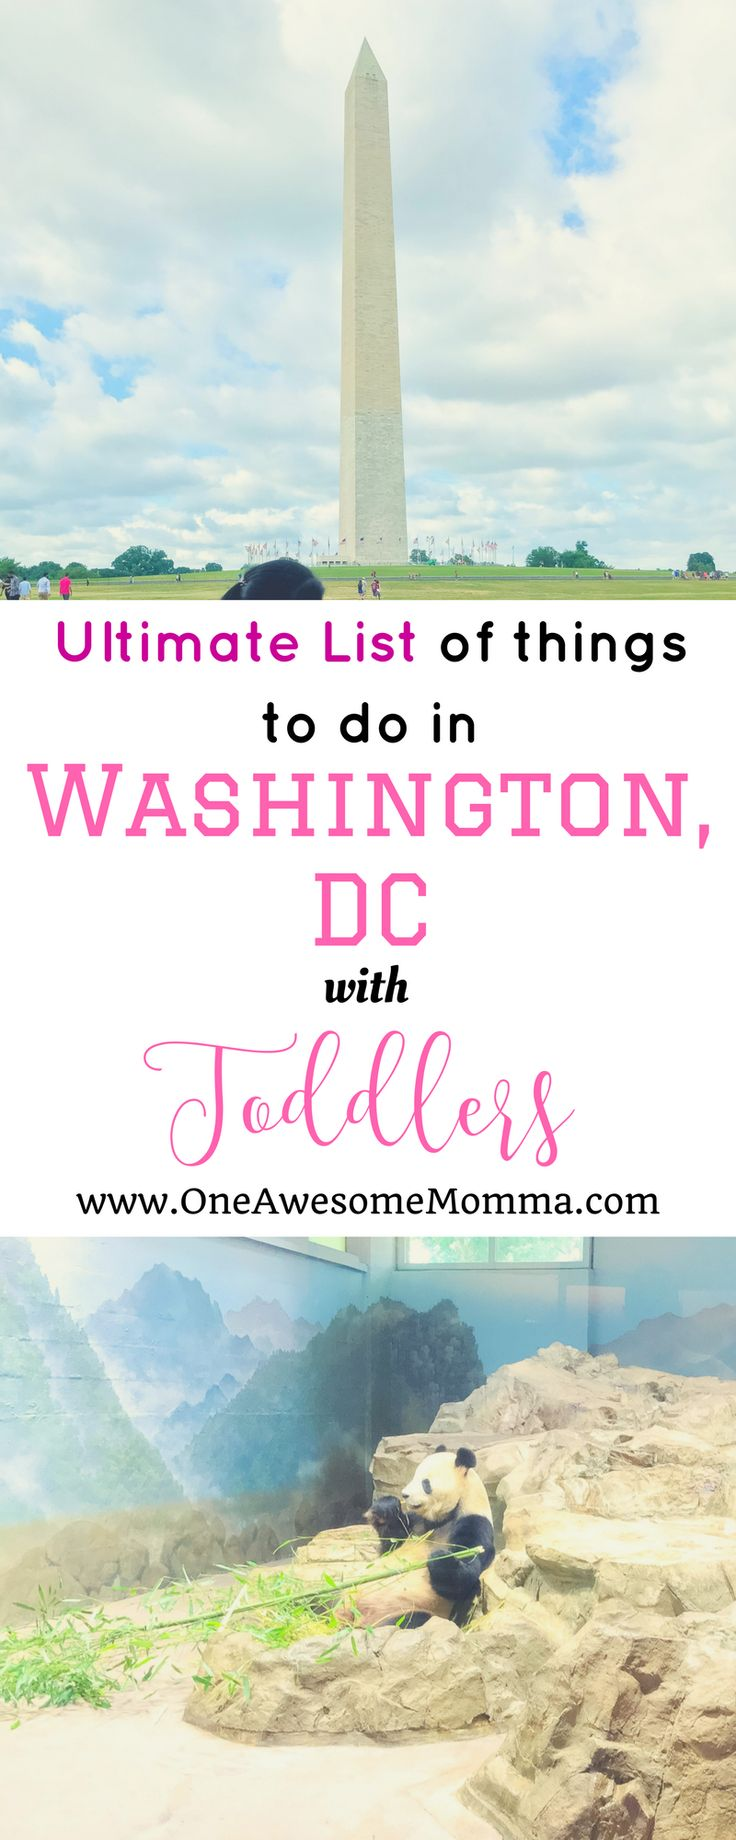 Are you planning to visit Washington DC with toddlers? This ultimate list of things to do in Washington DC with toddlers is the only list you'll ever need to create your Washington DC itinerary. | washington dc travel | washington dc with kids | washington dc trip | washington dc activities | washington dc activities for kids | summer travel | family trip ideas | family trips | family trip destinations | family travel | family travel destinations | toddler summer | kids summer | family…